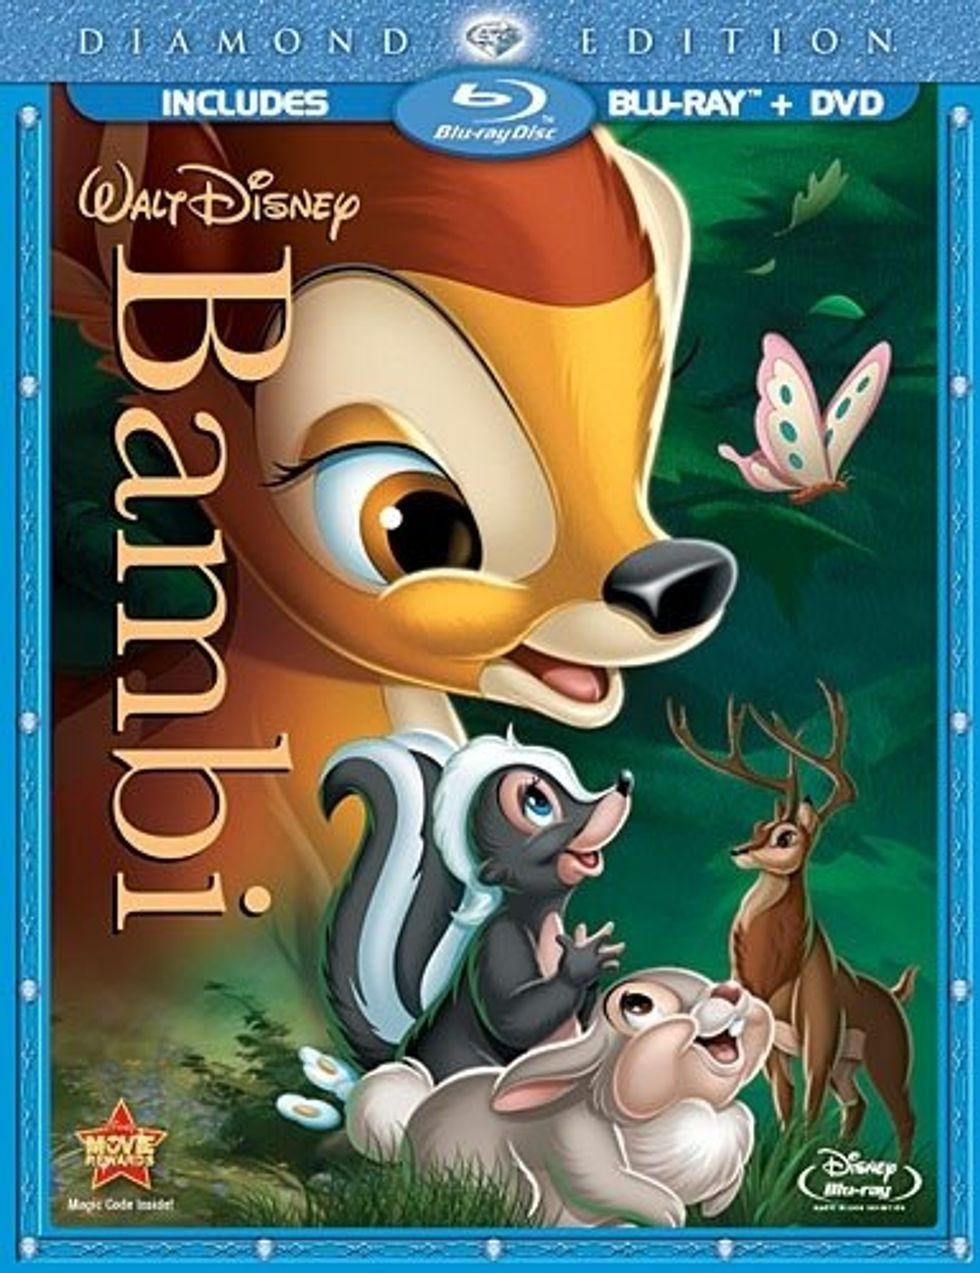 Bambi On Blu-ray and DVD Combo